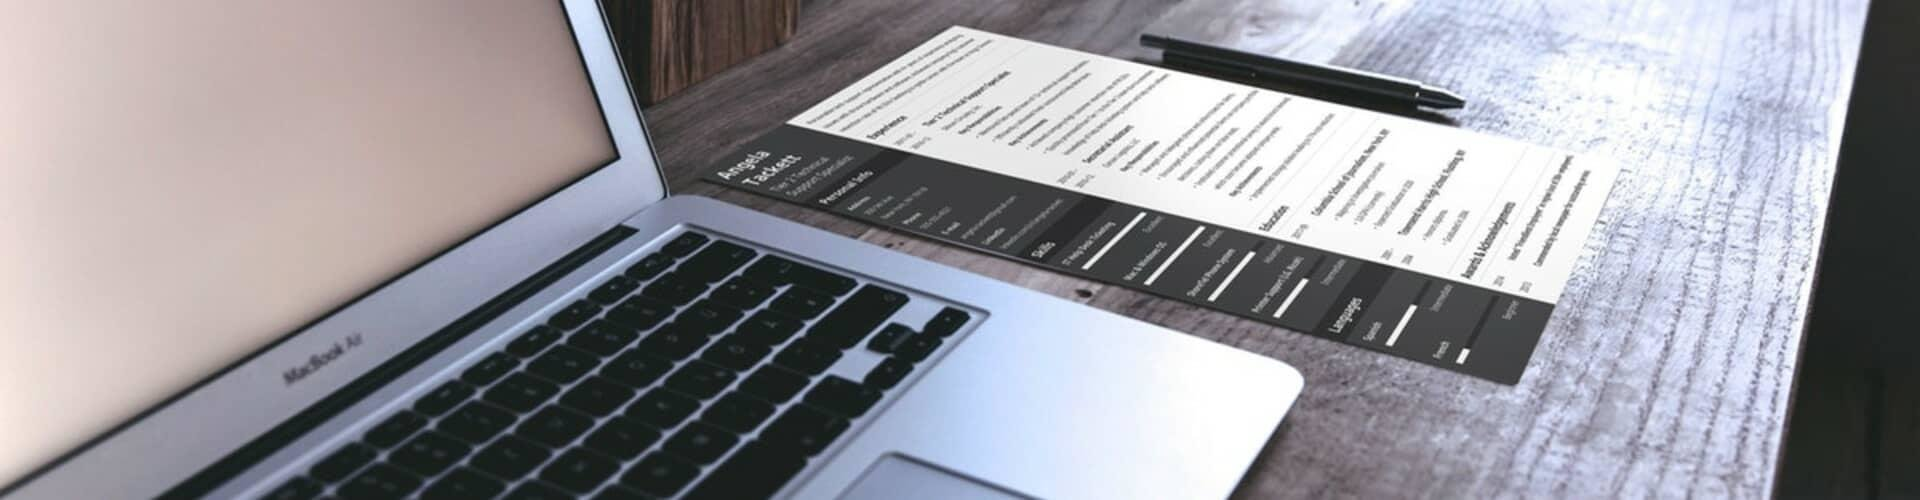 Top 14 Best Resume Templates to Download in 2020 [Great for CV] Free Nursing Newsletter Templates Downloads on free nursing forms, free nursing letterhead templates, free nursing graphics, free nursing powerpoint presentation templates, free professional development templates, free nursing resume templates, free nursing logo design, free newsletter template printable, free nursing education templates, free nursing flyer templates, free nursing invitation templates, free nursing home, free nursing clip art, free nursing business card templates, free nursing brochures, free nursing icons, free nursing borders, free nursing banner templates, free nursing schedule templates, free nursing posters,